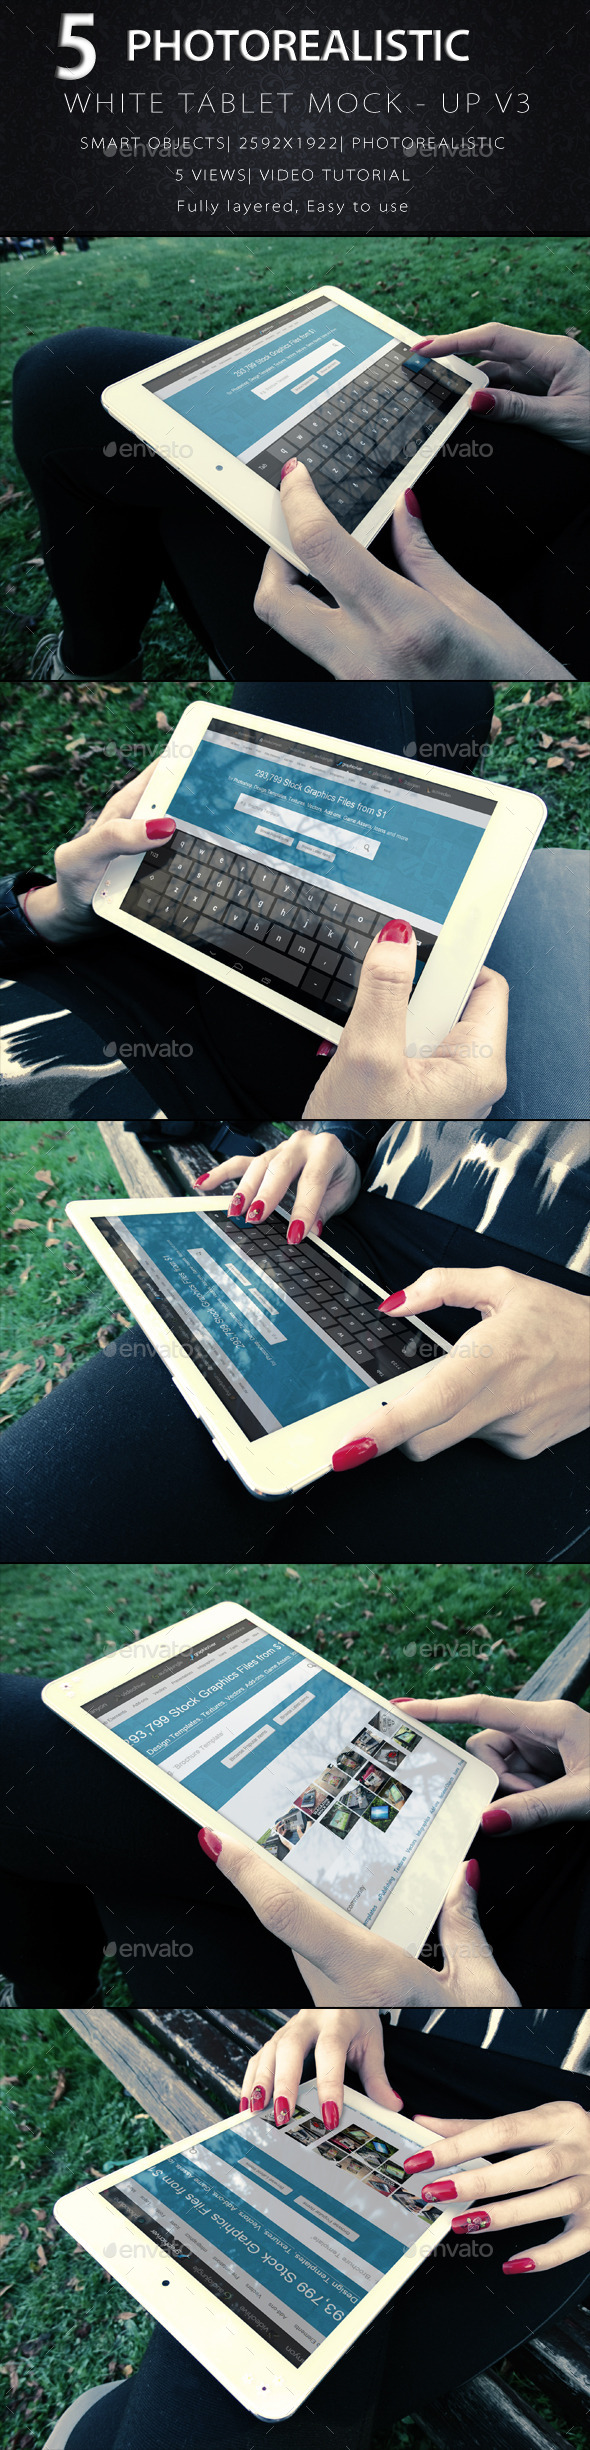 GraphicRiver Photorealistic Tablet With Female Hands Mock-Up V3 9265790